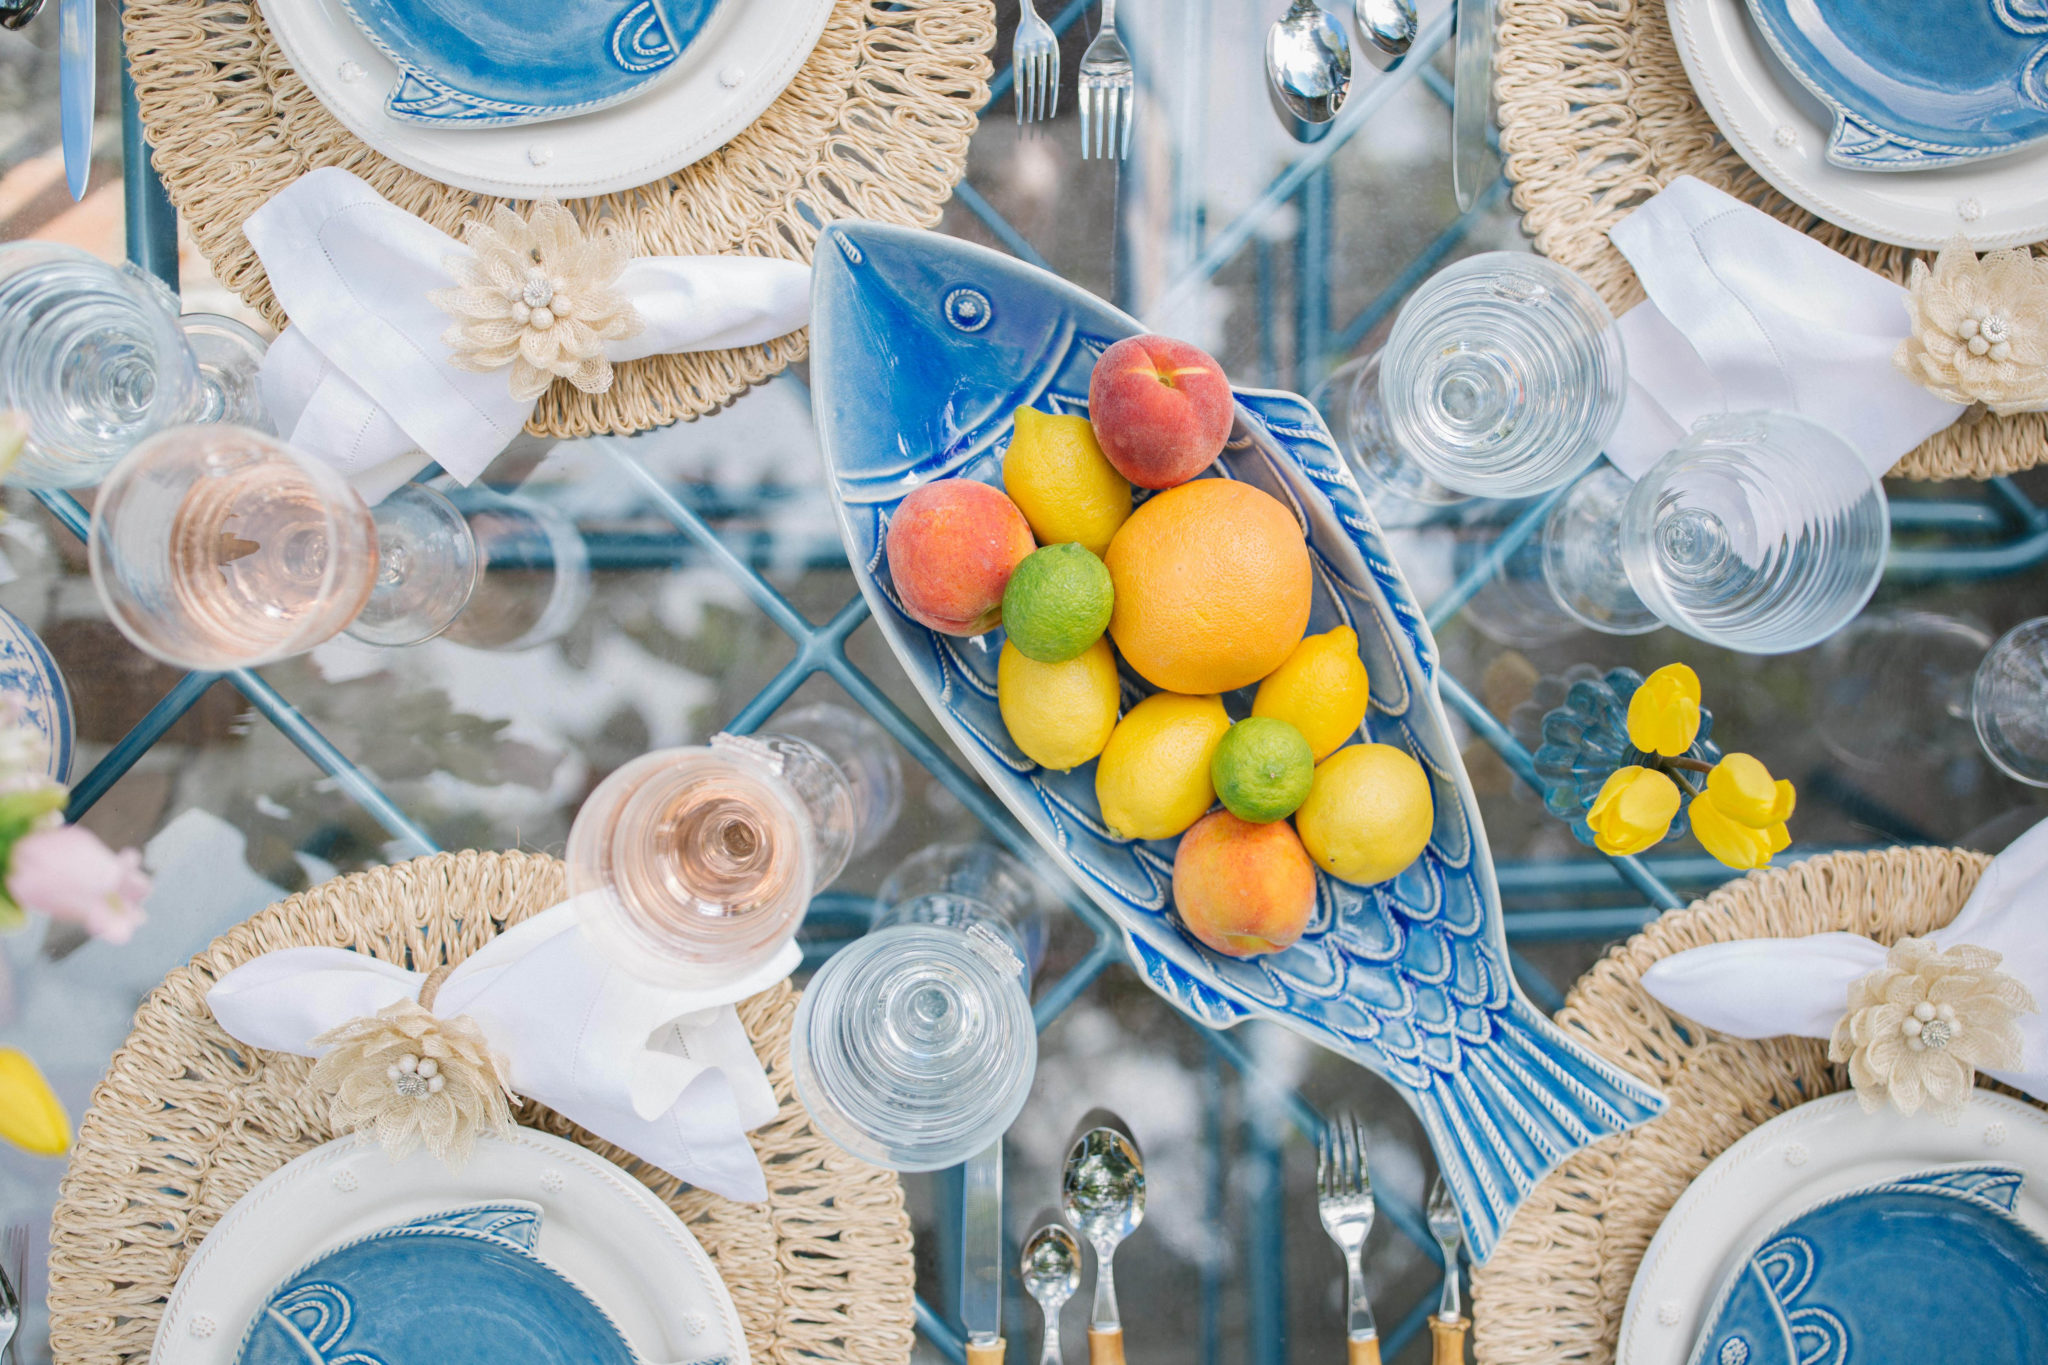 Summer Table Decor Ideas for a Memorable Summer at Home | Rhyme & Reason